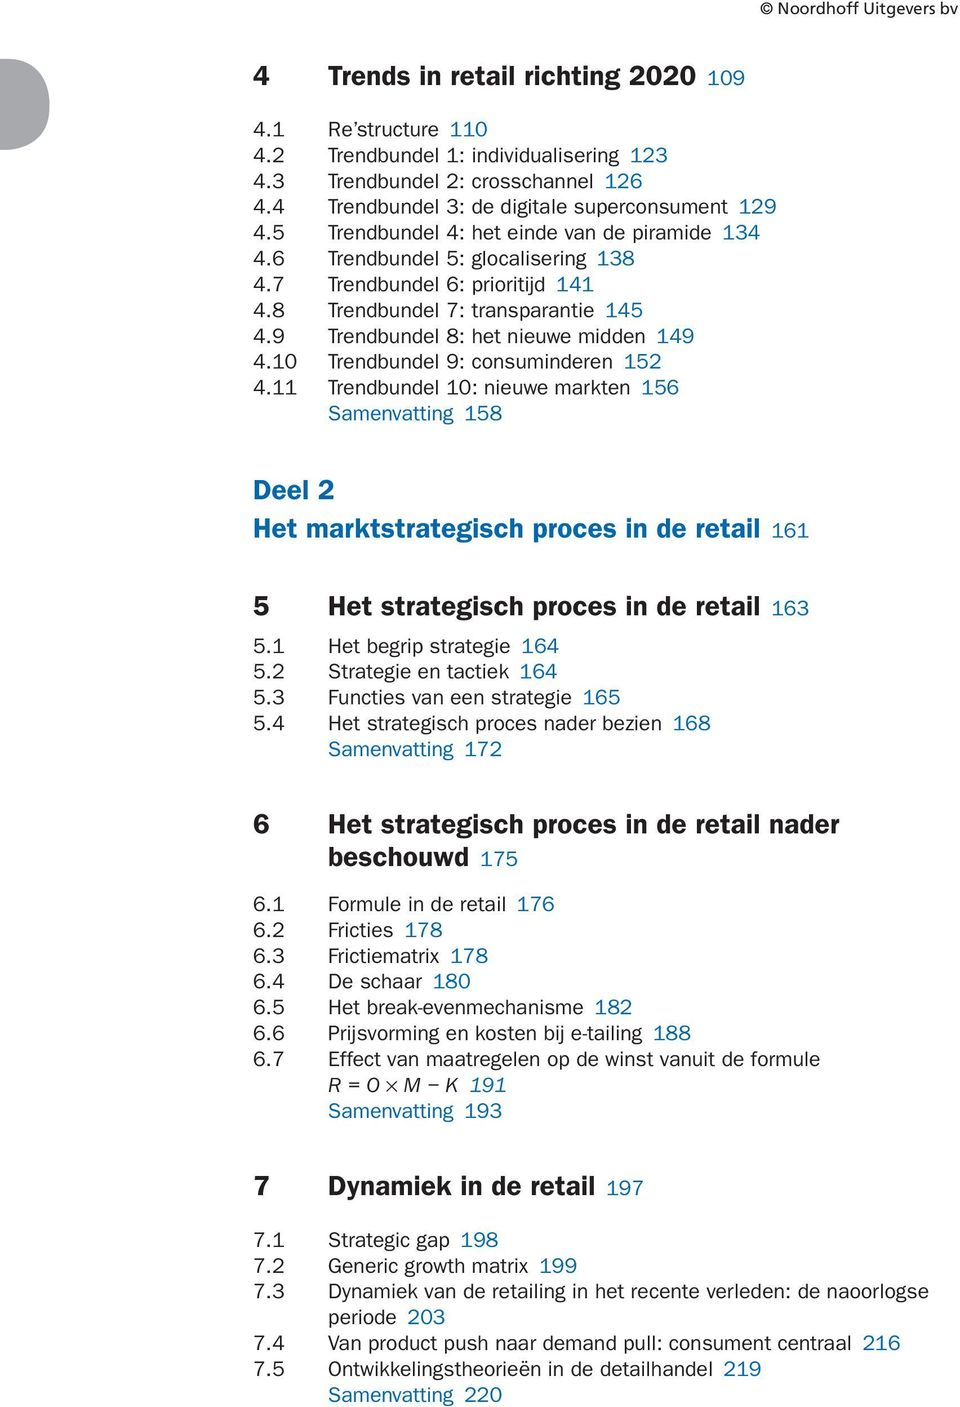 Trendbundel 0: nieuwe markten Samenvatting Deel Het marktstrategisch proces in de retail Het strategisch proces in de retail. Het begrip strategie. Strategie en tactiek. Functies van een strategie.